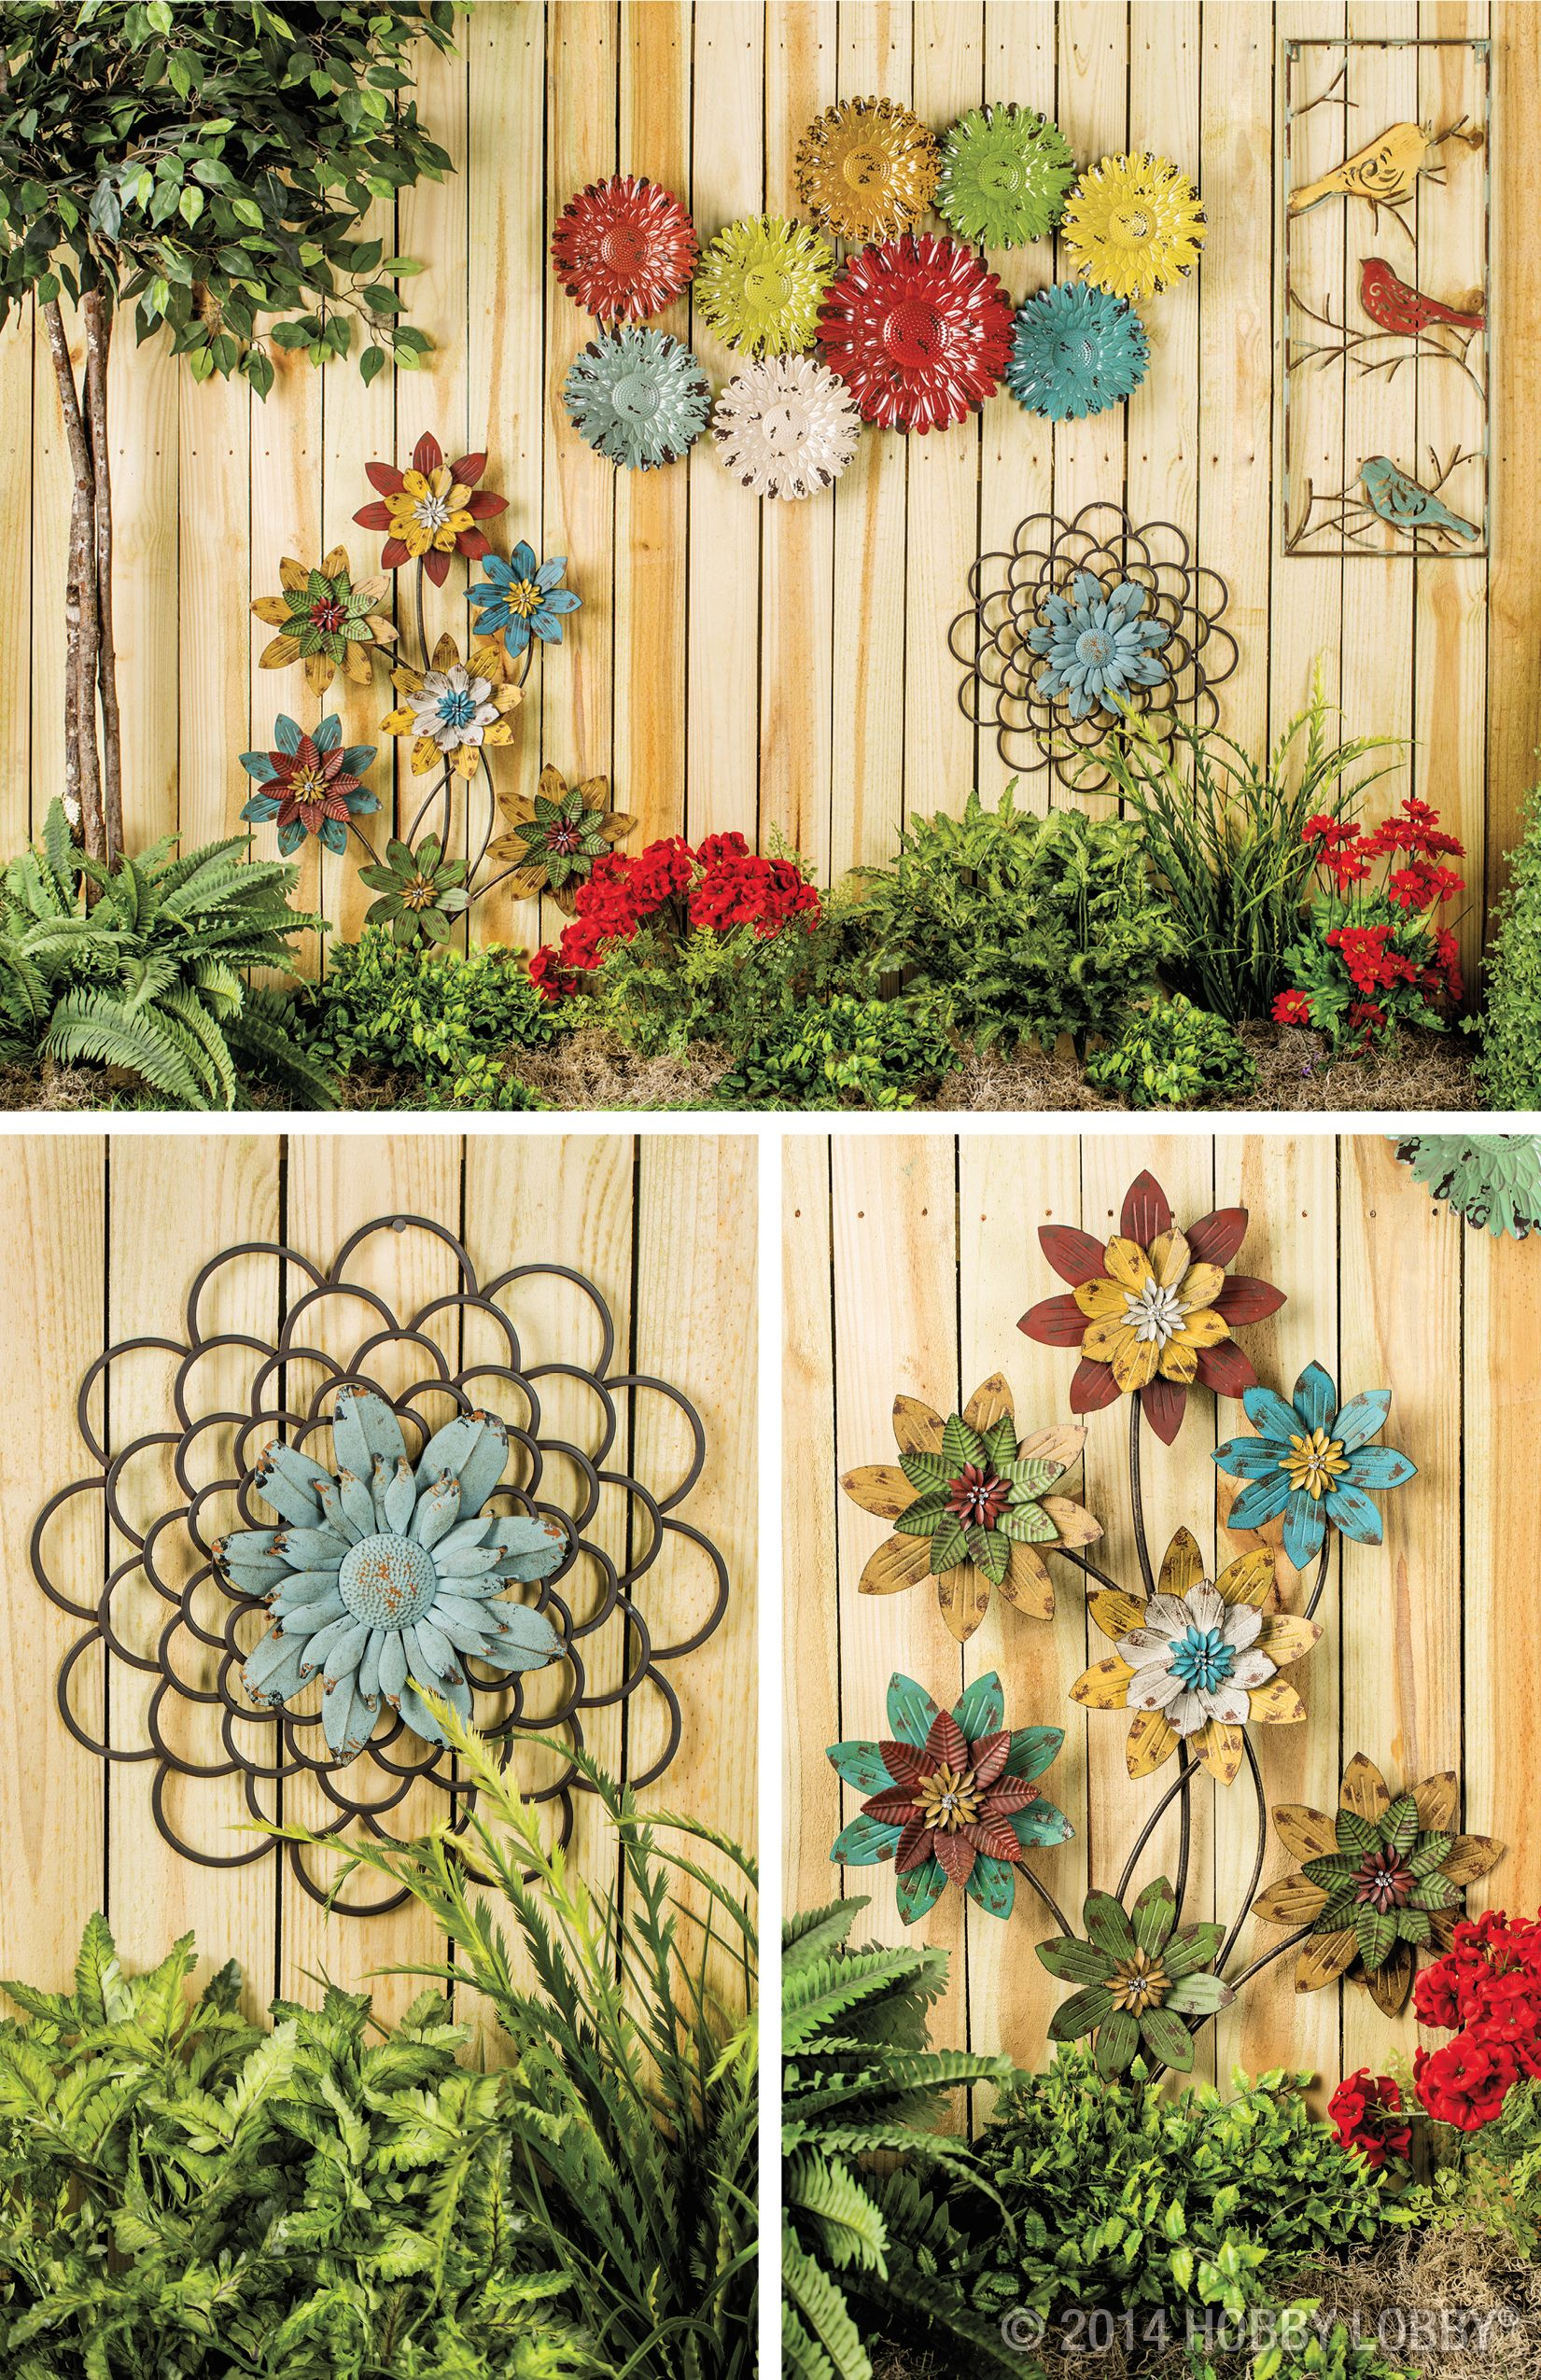 Garden wall art flowers  Your home décor will blossom with an eyecatching array of floral